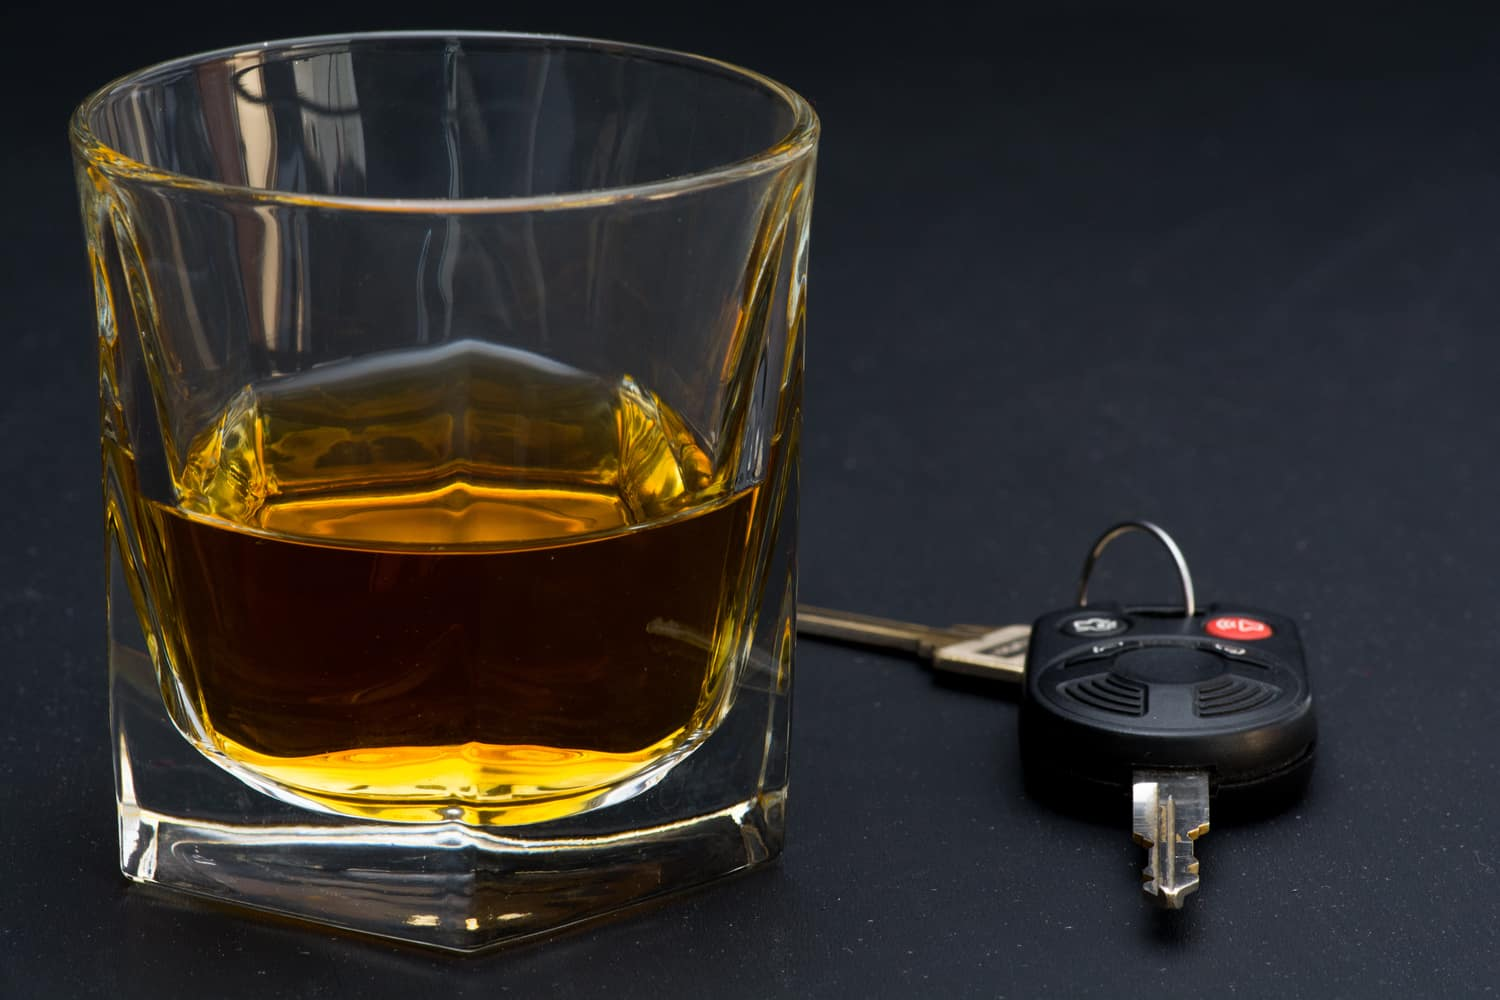 Car keys next to a glass of alcohol to represent DWI